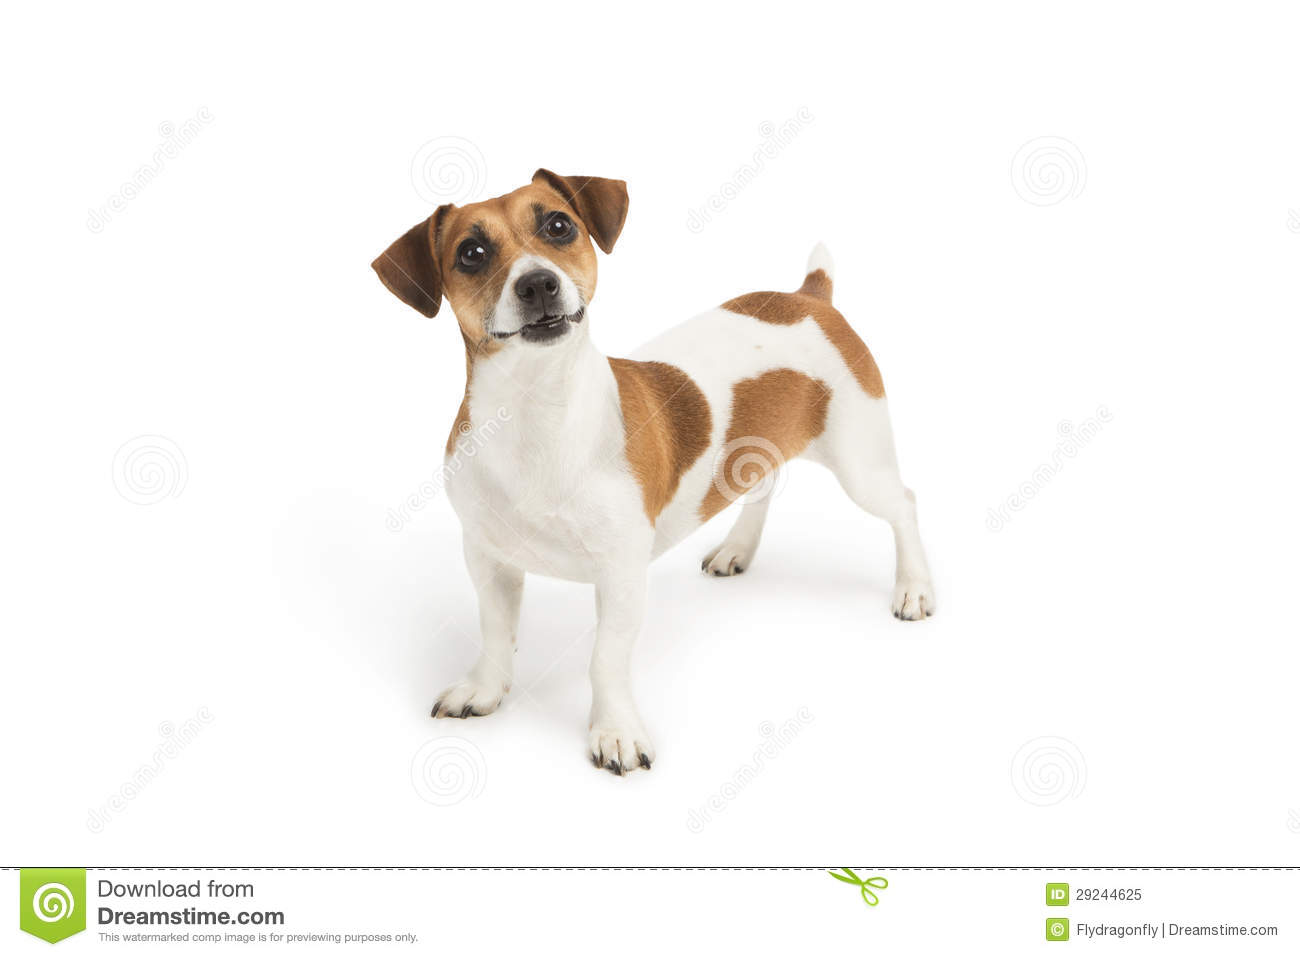 Surprised Jack Russell Terrier dog looking up at the camera